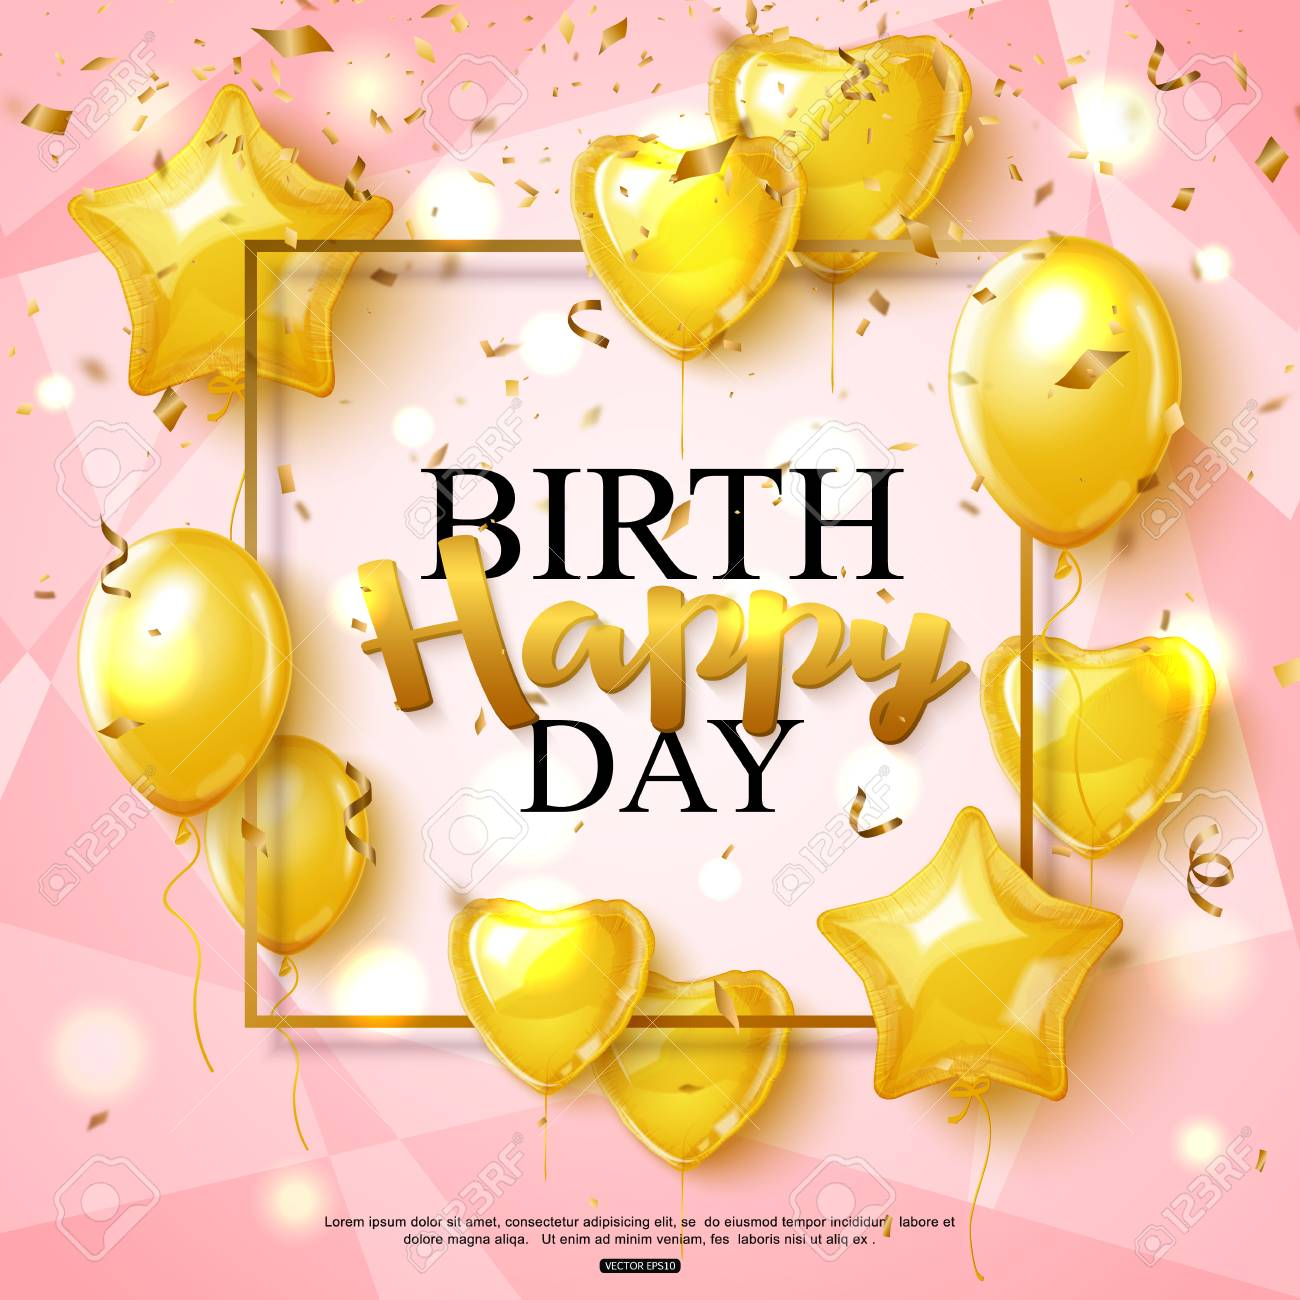 Birthday Greeting Card On Shiny Pink Background With Golden Balloon